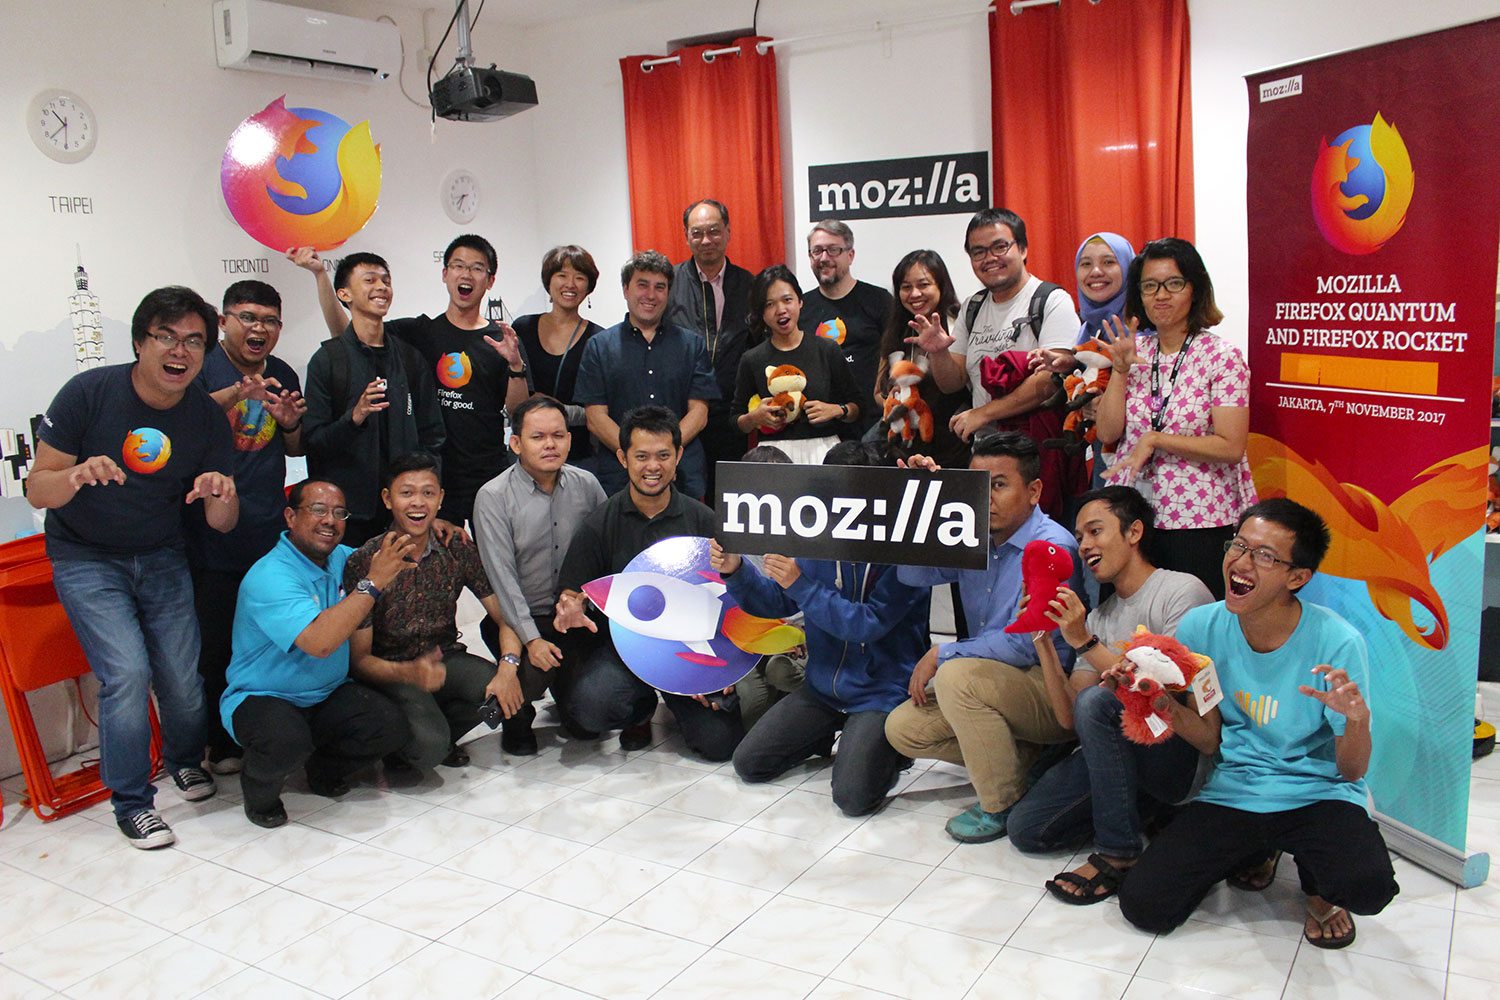 Firefox Quantum and Firefox Rocket Arrive in Indonesia